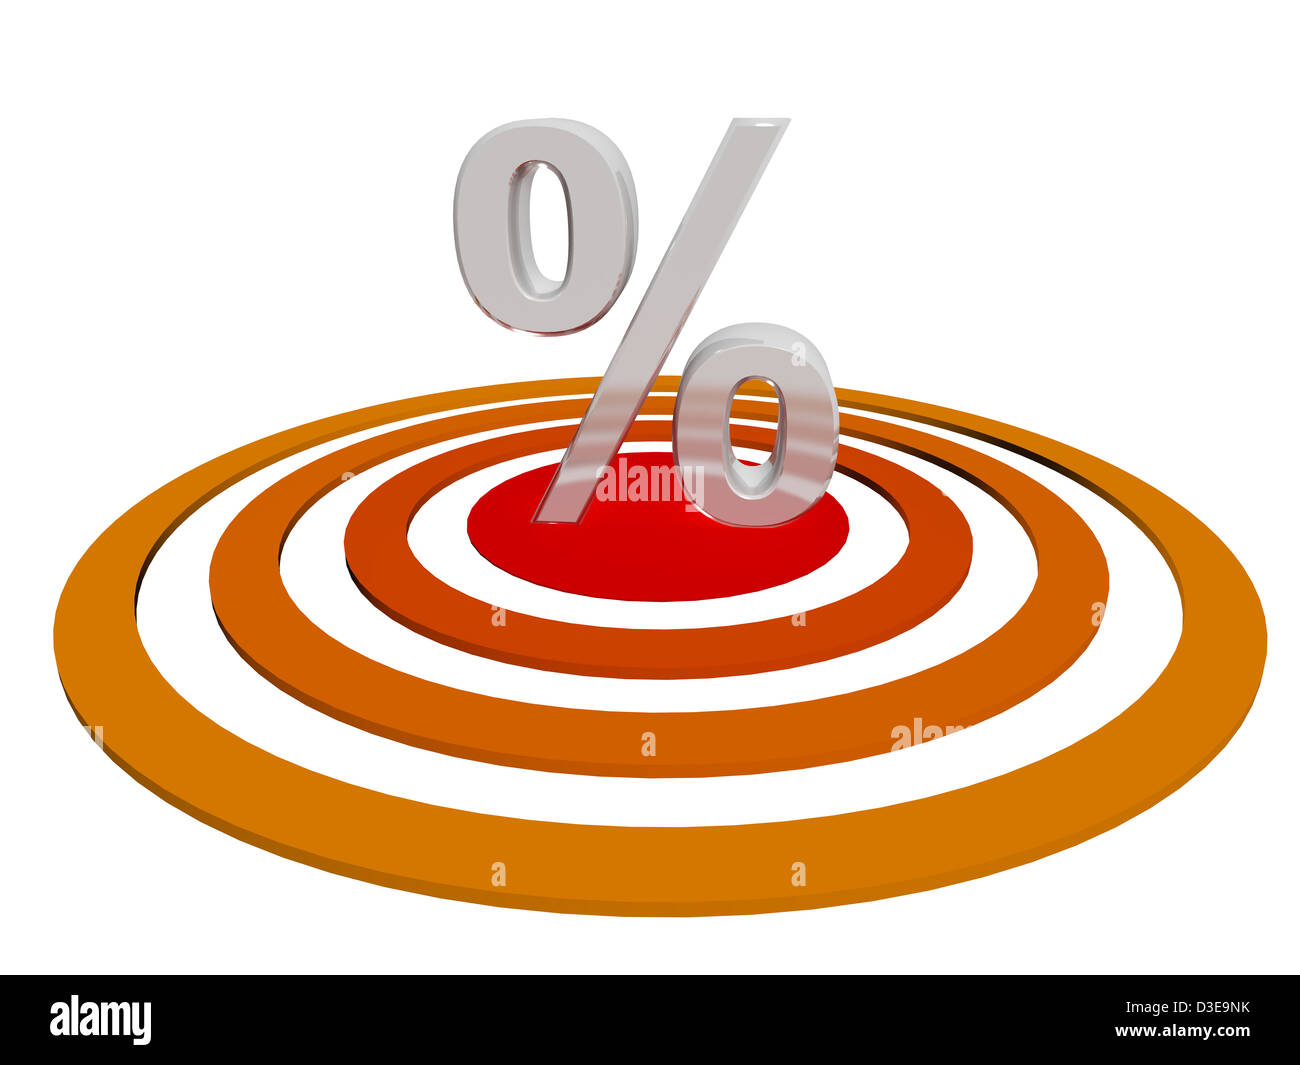 3d render illustration of a silver percent symbol on a red target 3d render illustration of a silver percent symbol on a red target mark buycottarizona Image collections